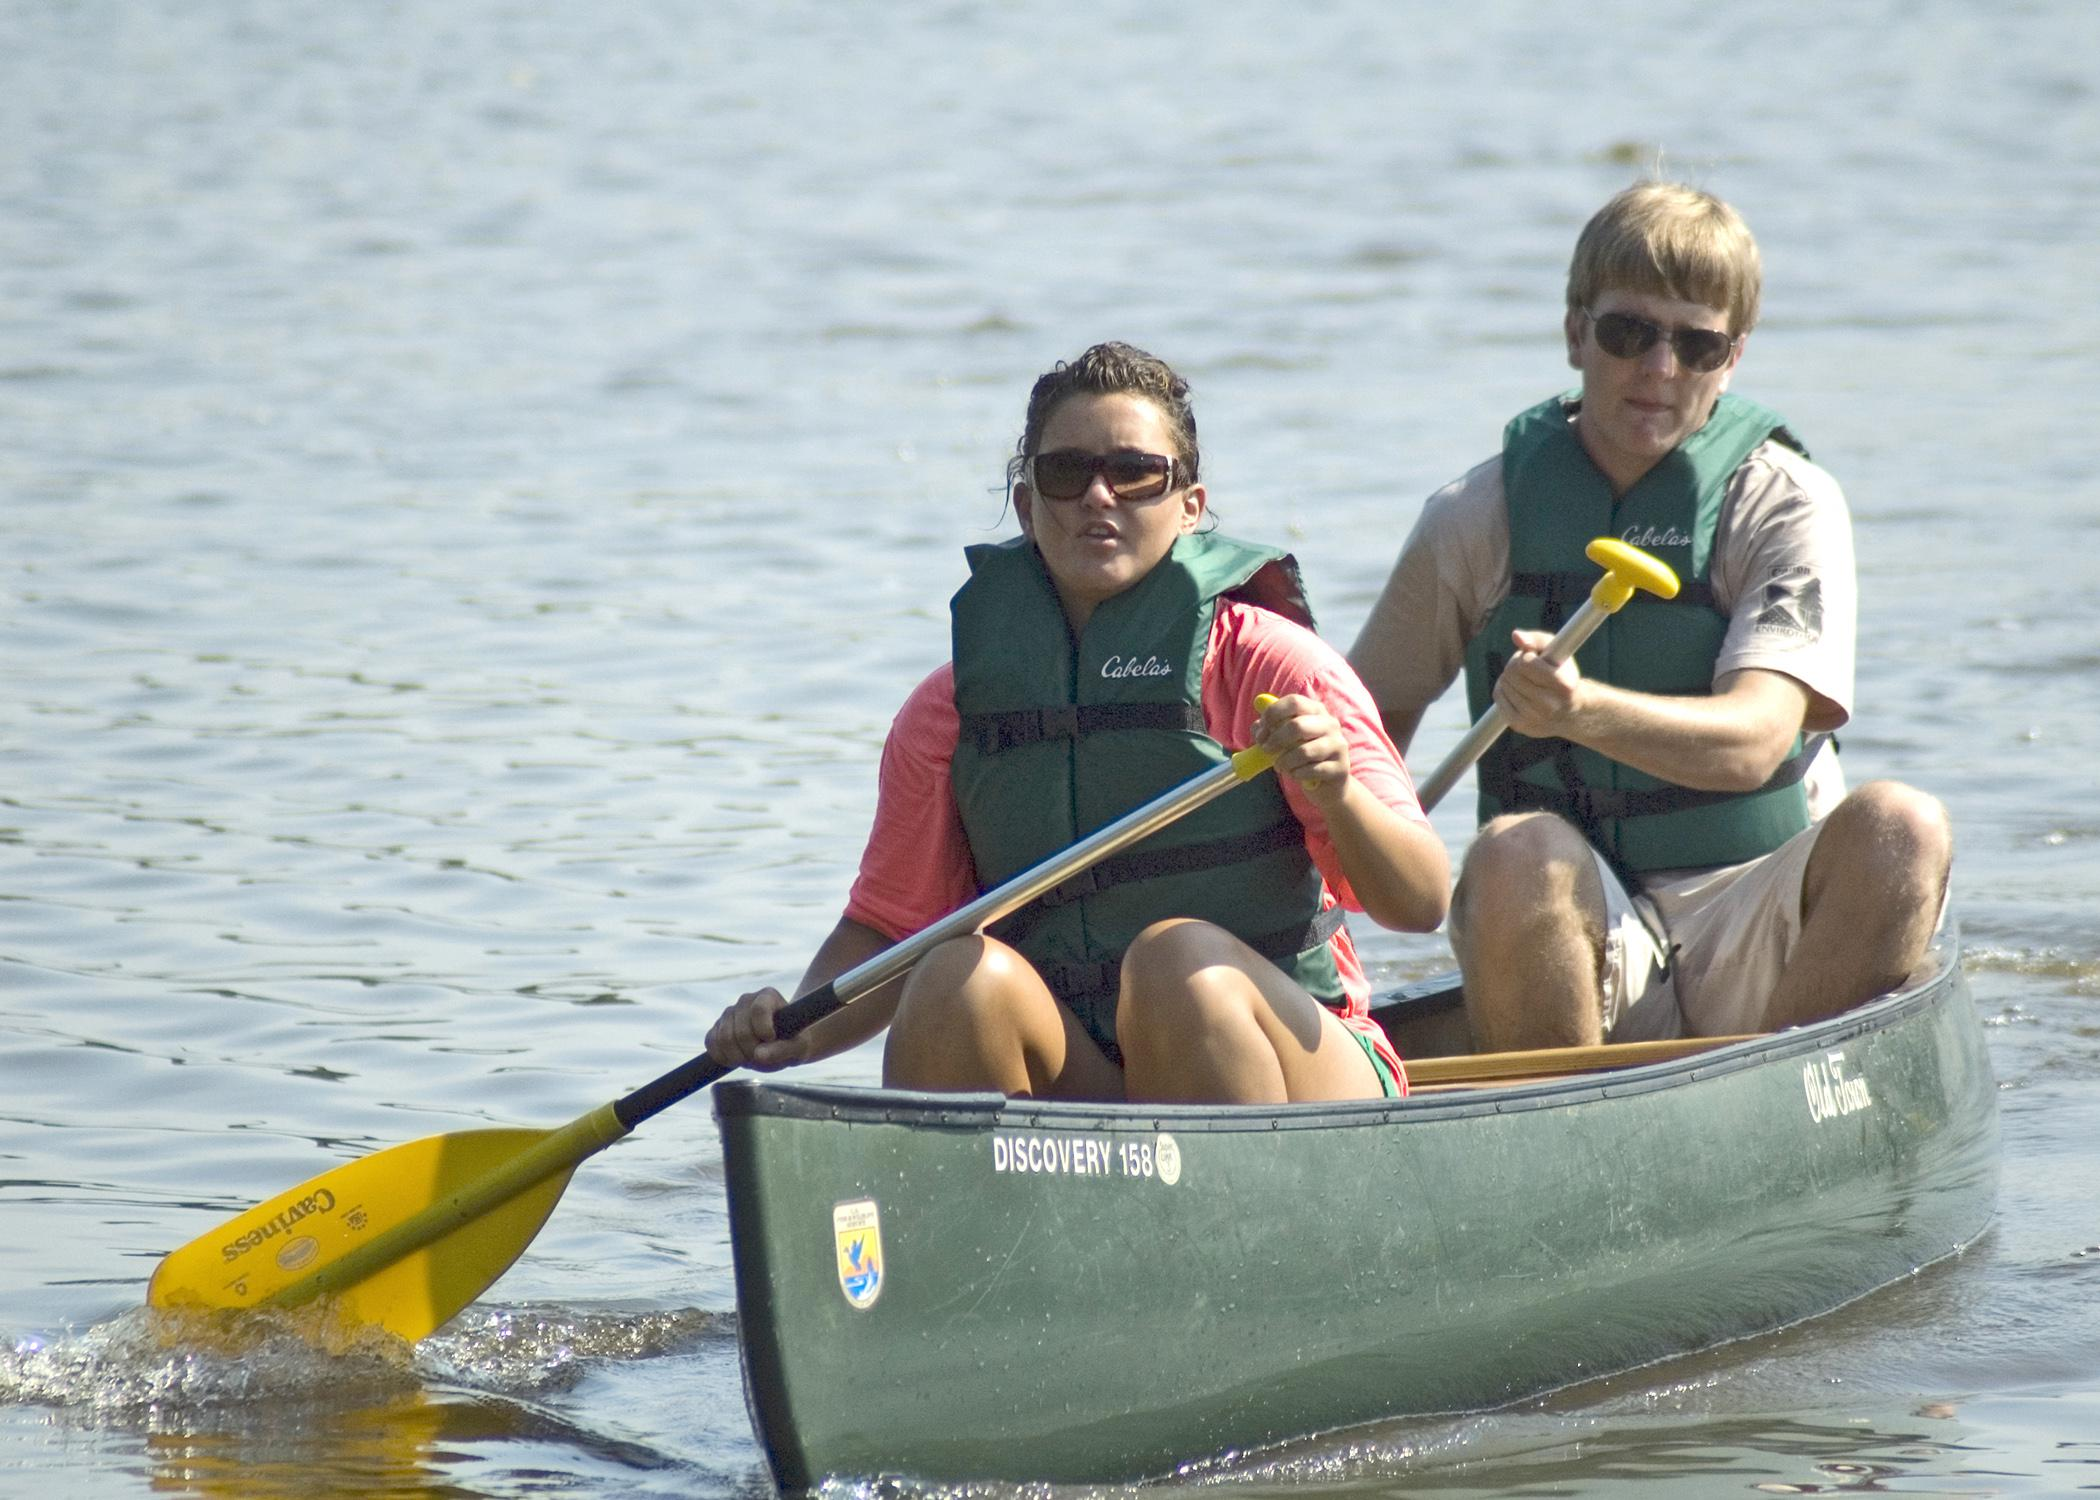 Before you go out on the water, make sure that your family and friends are fitted properly with lifejackets and that they keep them on at all times while in the boat. (File photo by MSU Ag Communications)